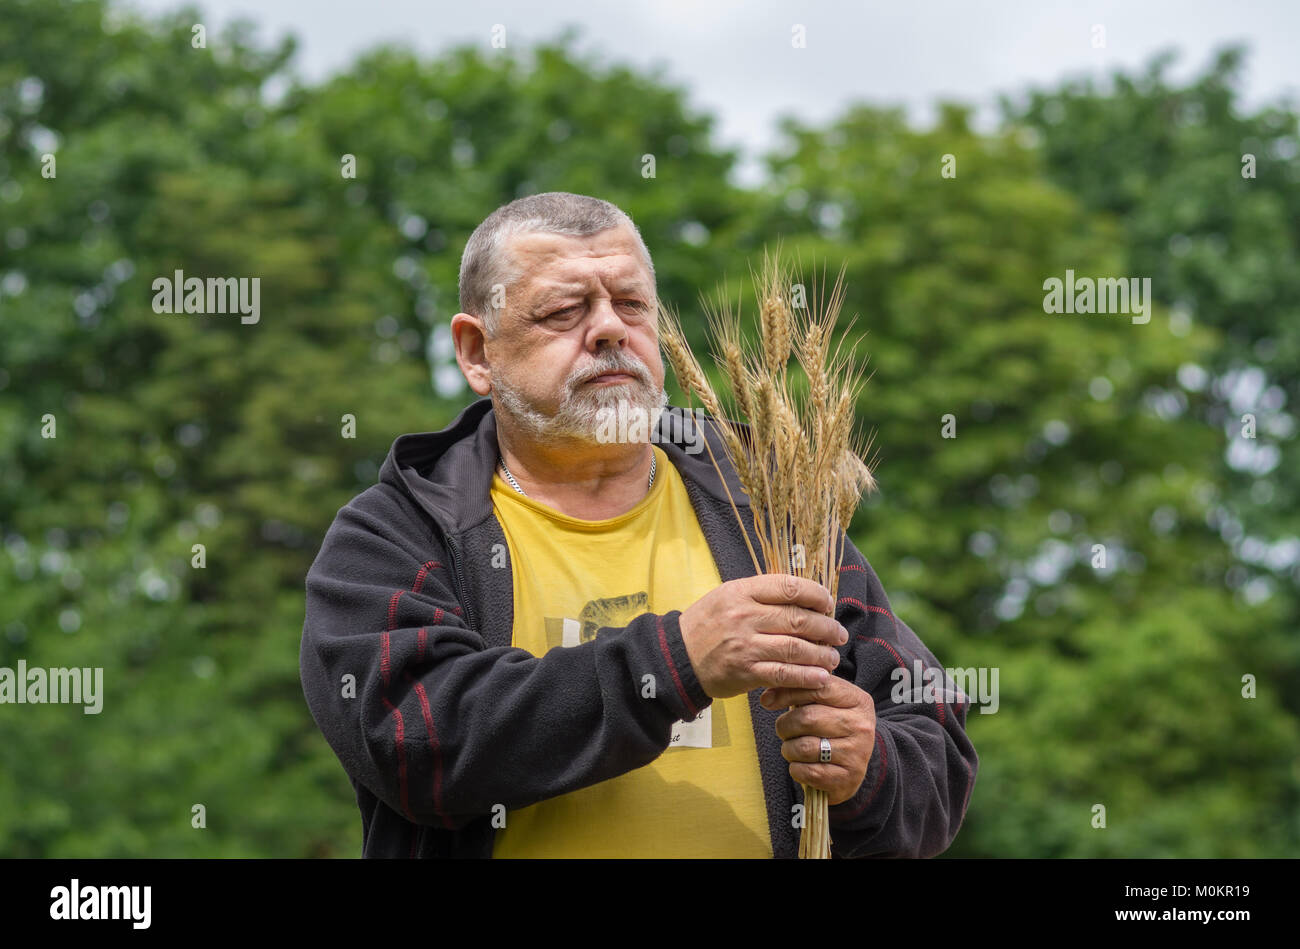 Portrait of a senior farmer with bunch of wheat spikelets - Stock Image